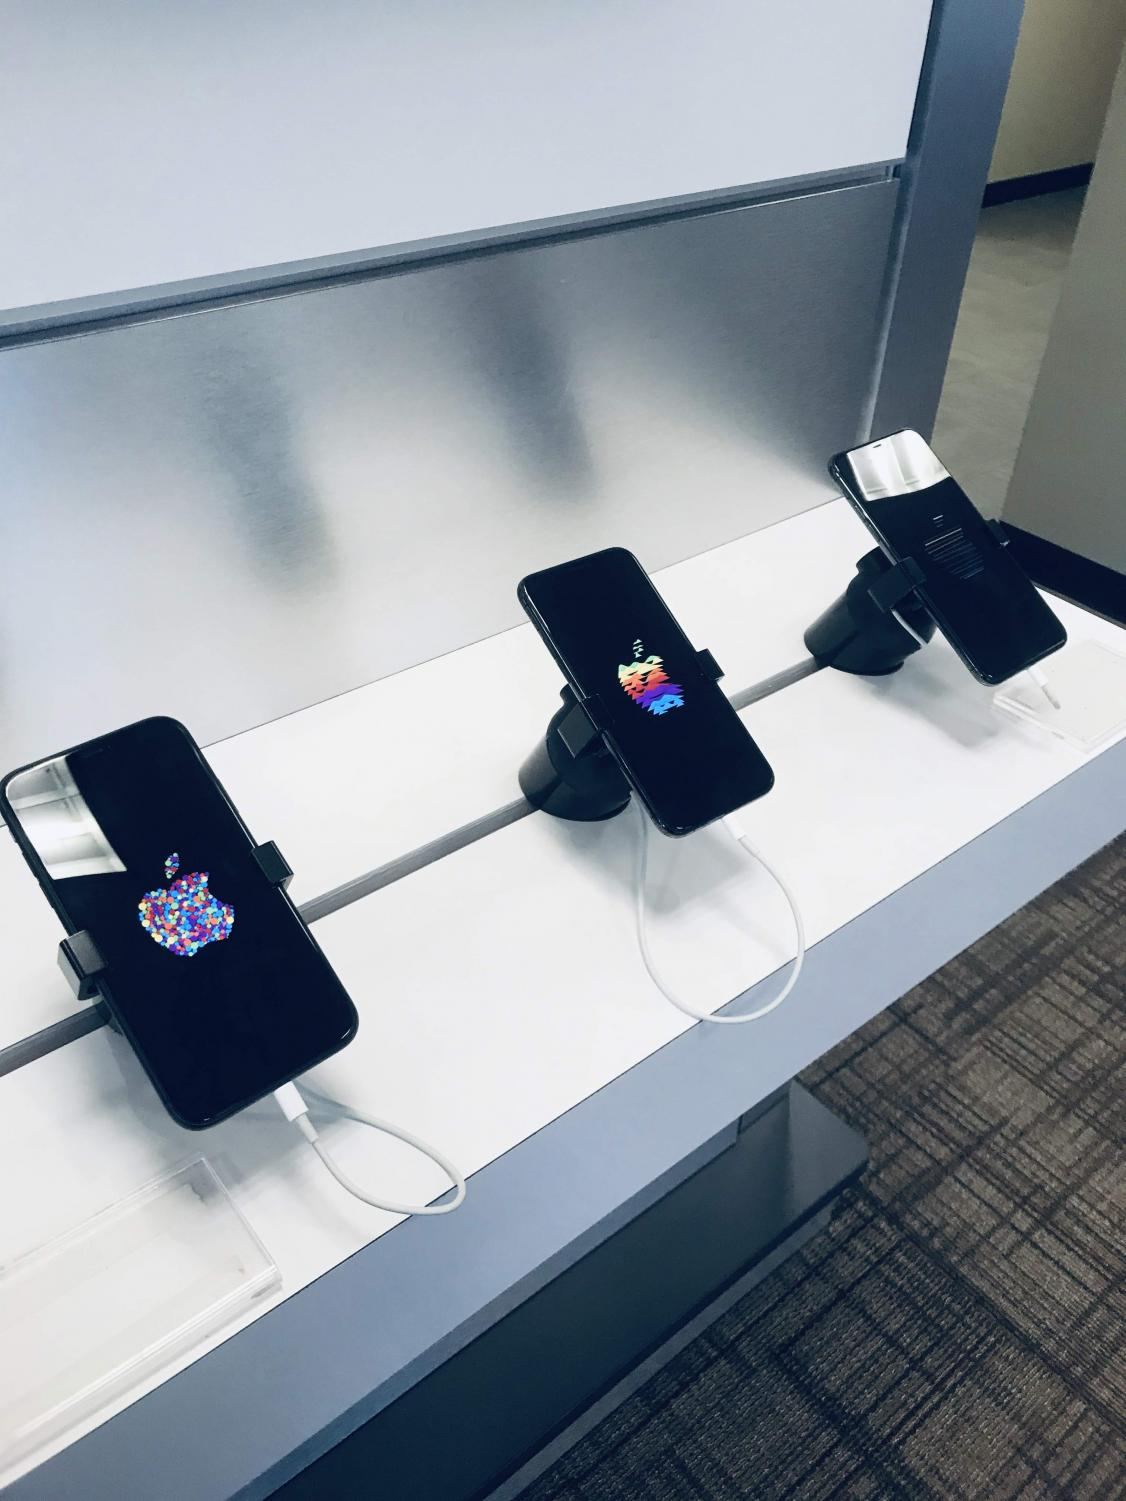 Apple does it again. At Verizon in the collection, the newest models of the iPhone are on display. Apple has made great improvements from the iPhone X. including updated Face ID features and improved wipe up bar.